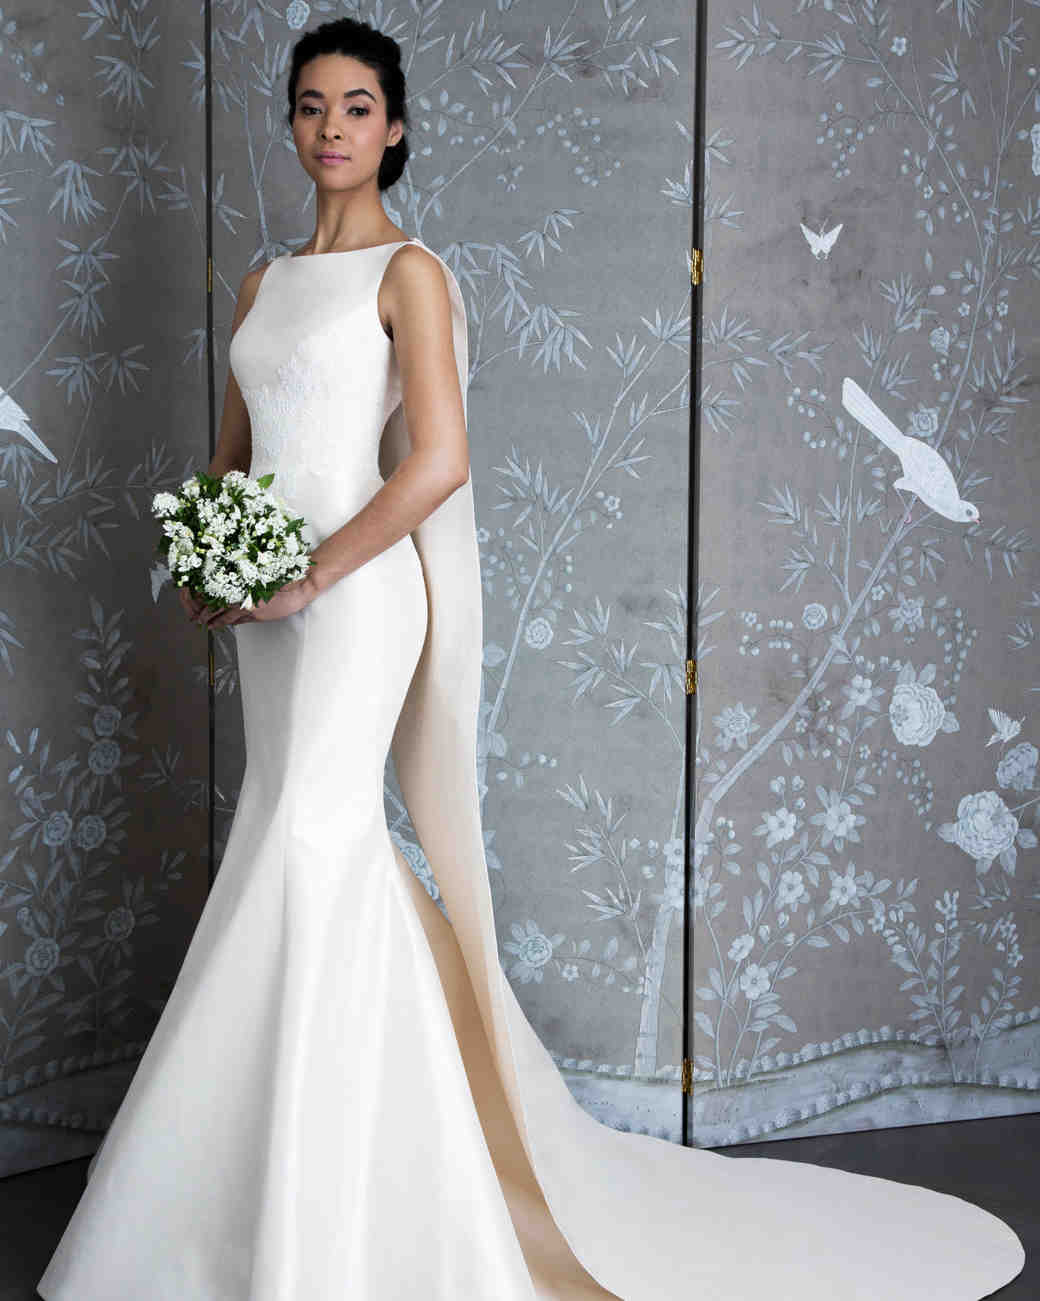 Meghan Markle\'s Wedding Dress: Get the Look | Martha Stewart Weddings